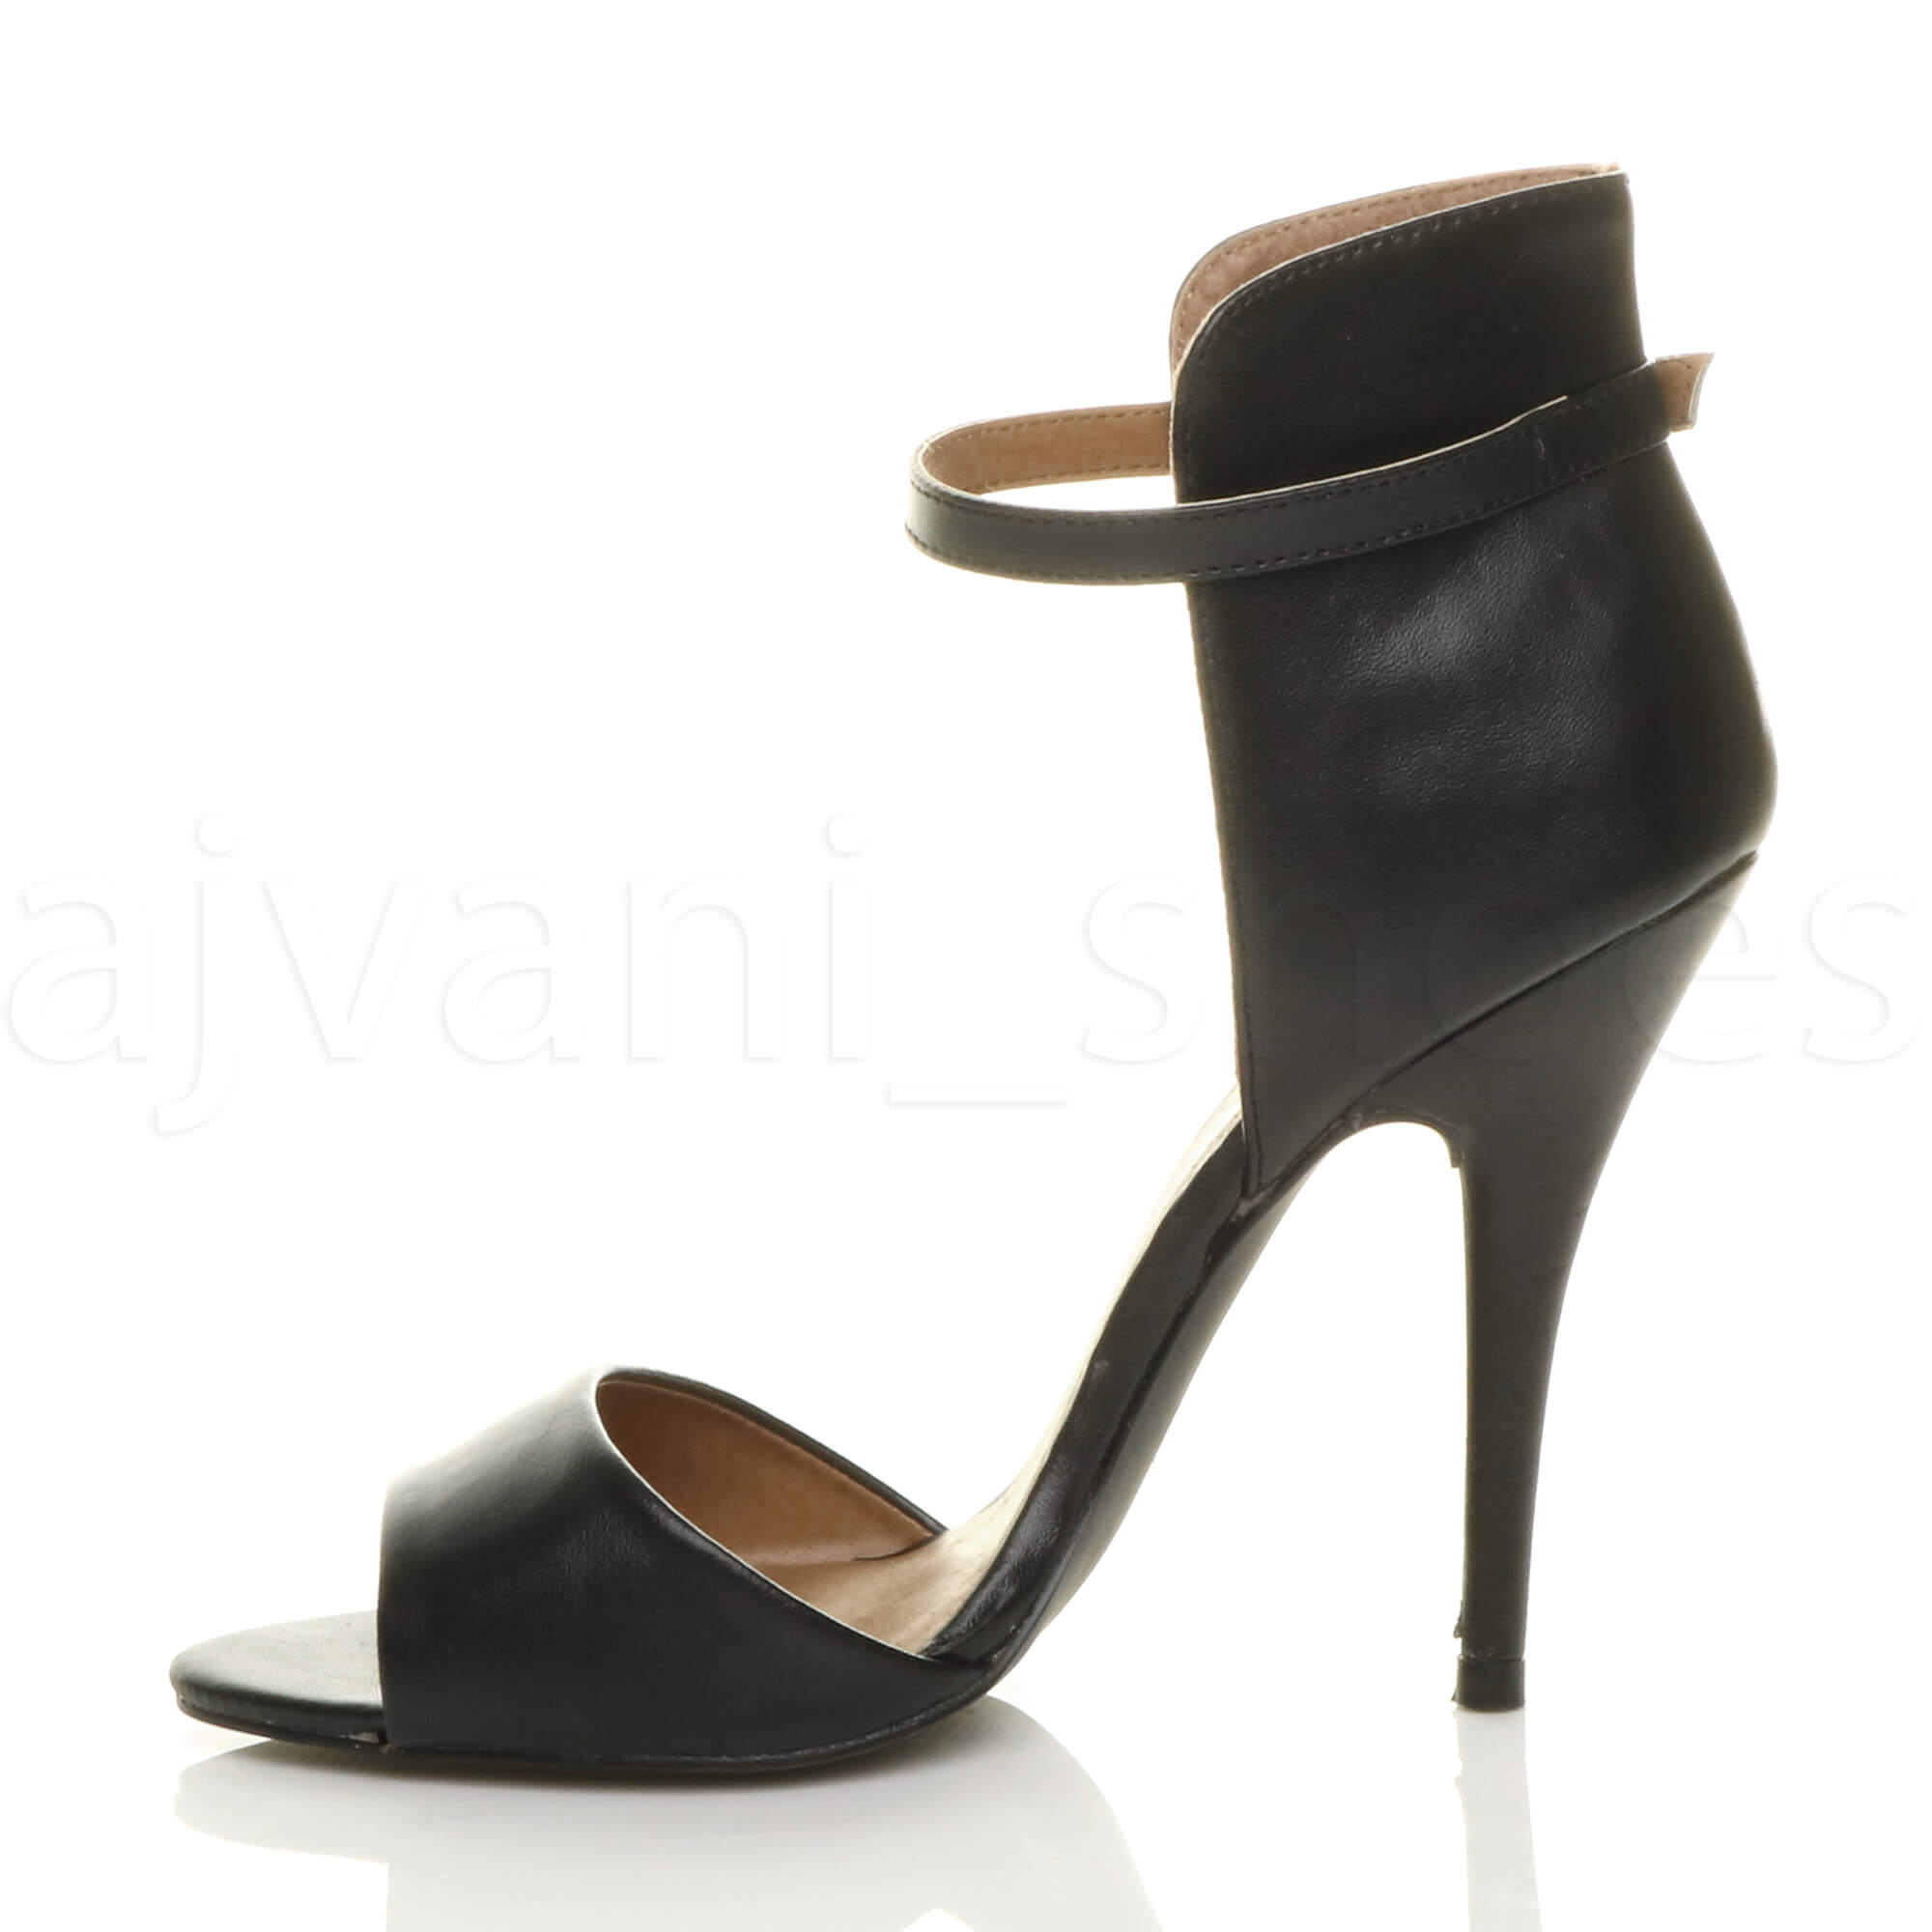 WOMENS-LADIES-HIGH-HEEL-STILETTO-PEEP-TOE-ANKLE-STRAP-CUFF-SANDALS-SHOES-SIZE